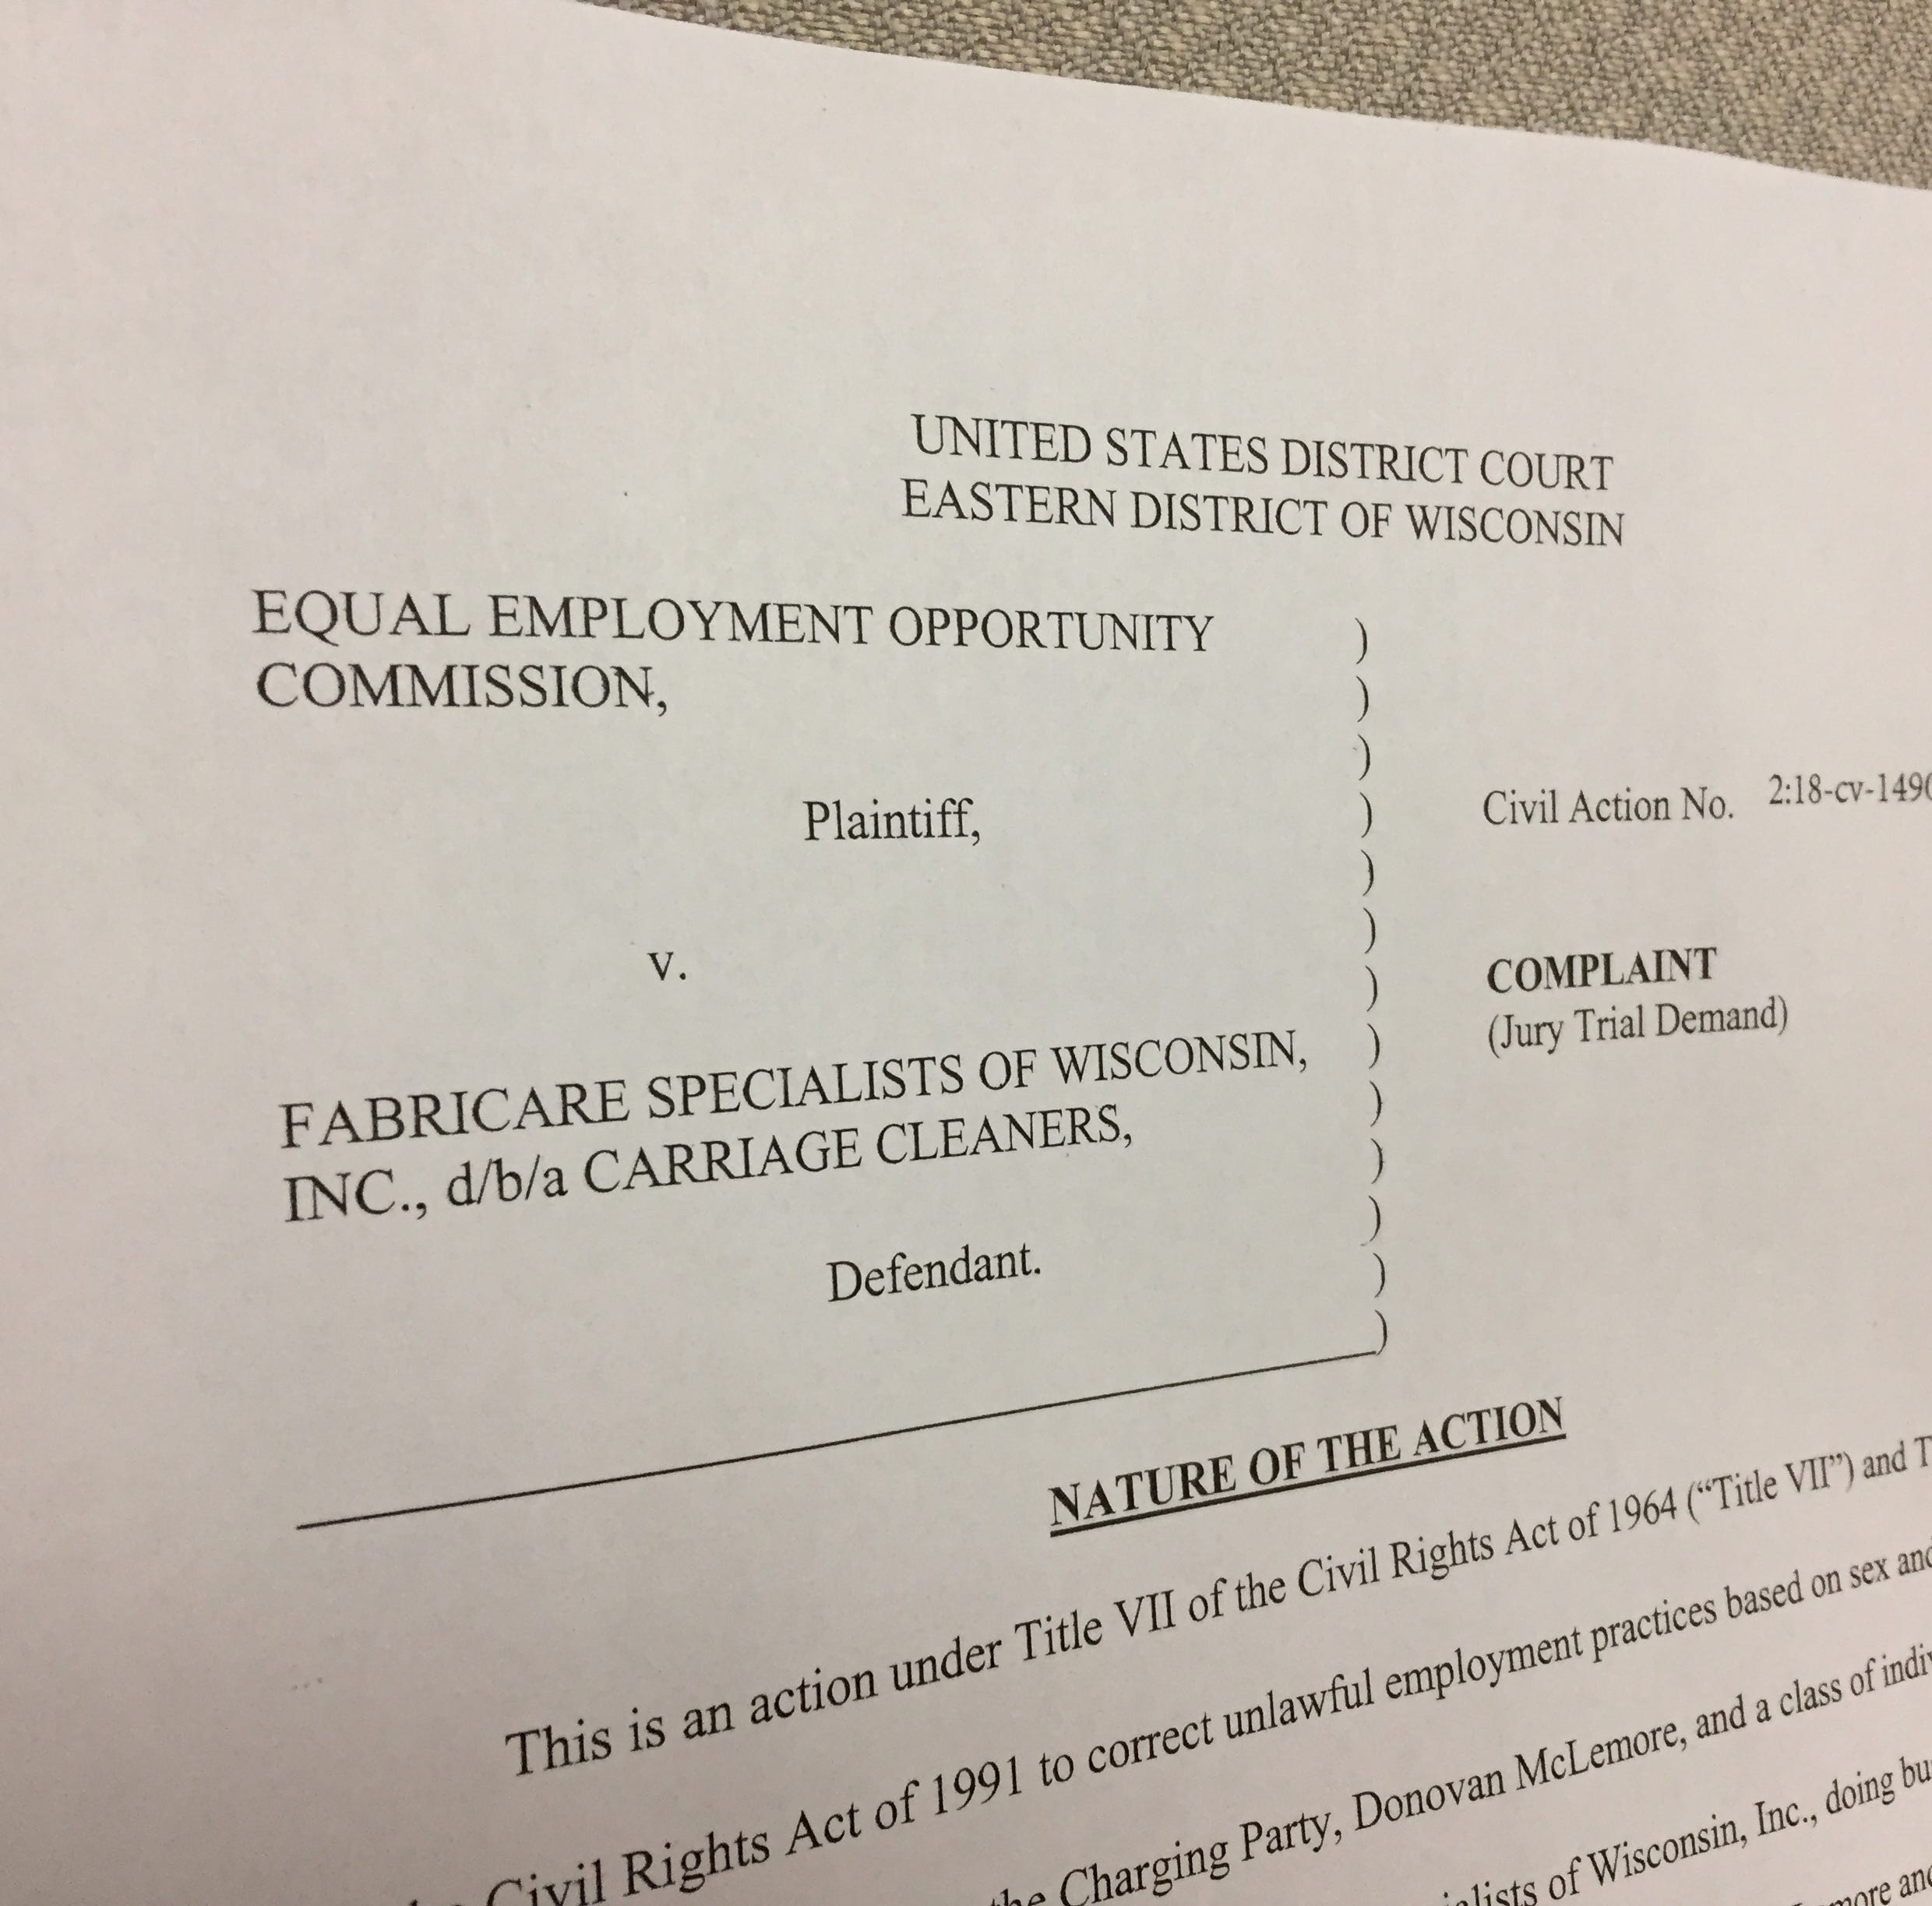 Milwaukee dry cleaner discriminated against a job applicant because he was a man, EEOC says